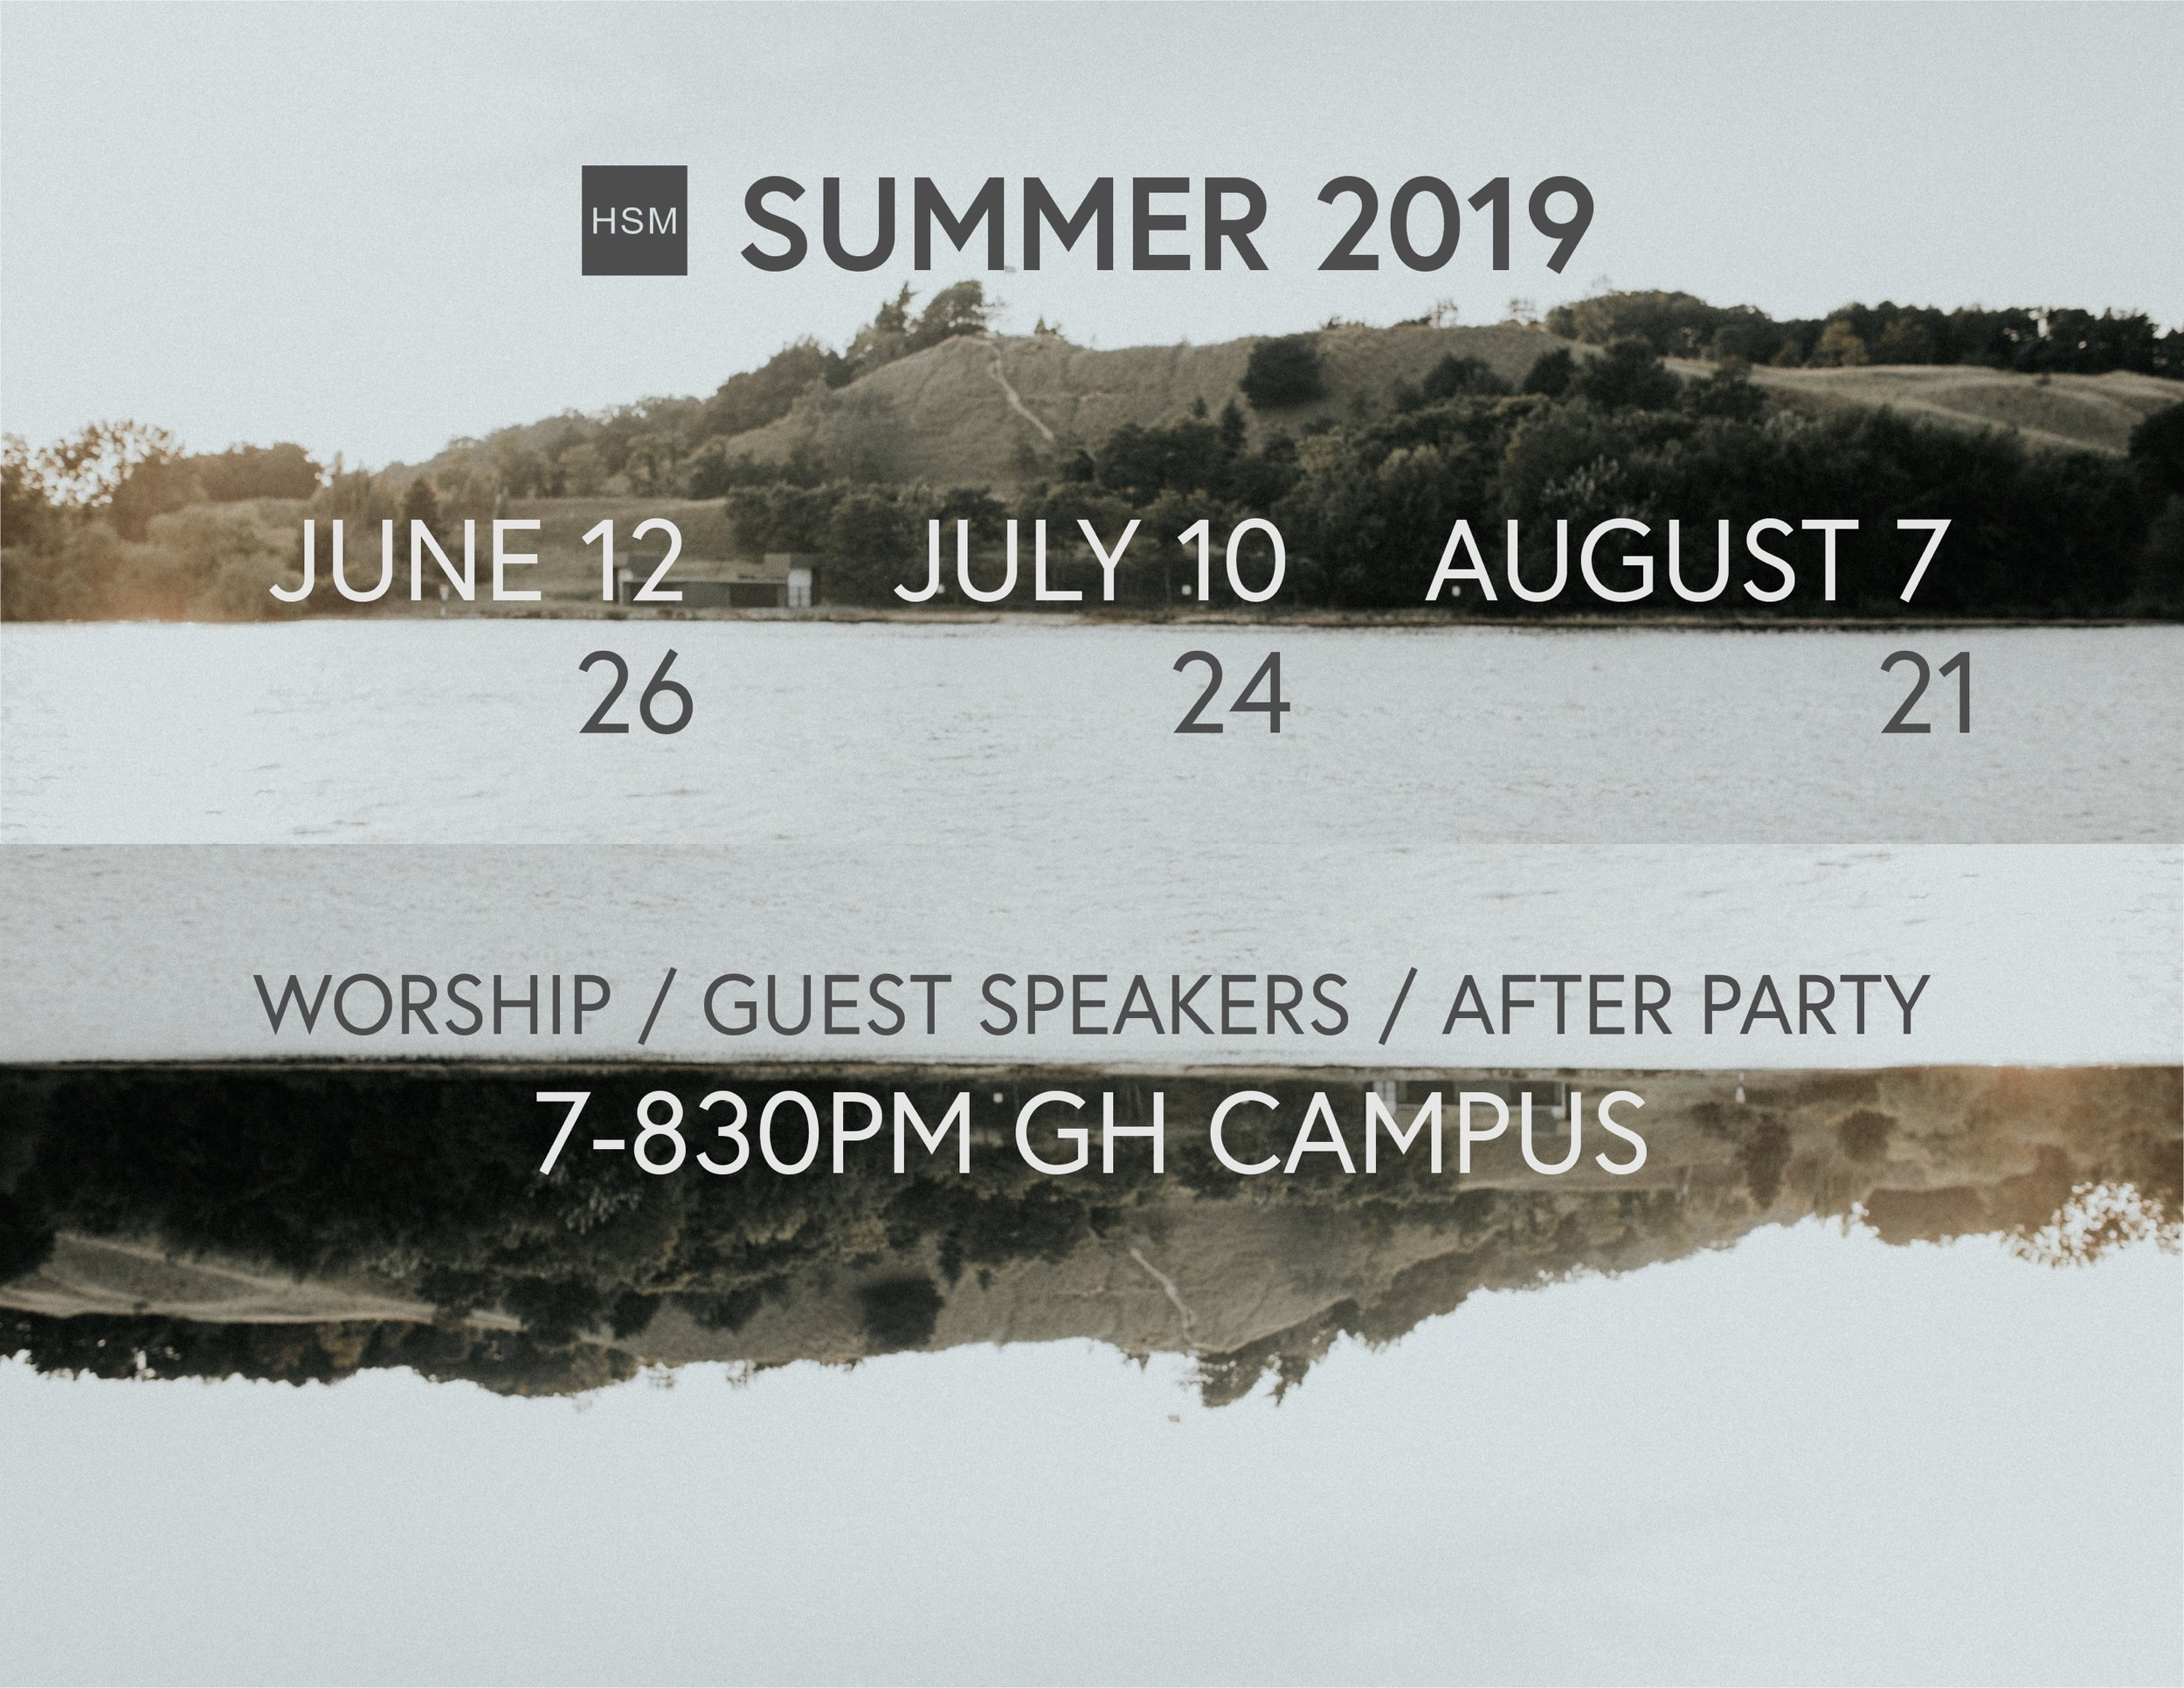 HSM Summer 2019 Schedule shorter.jpeg